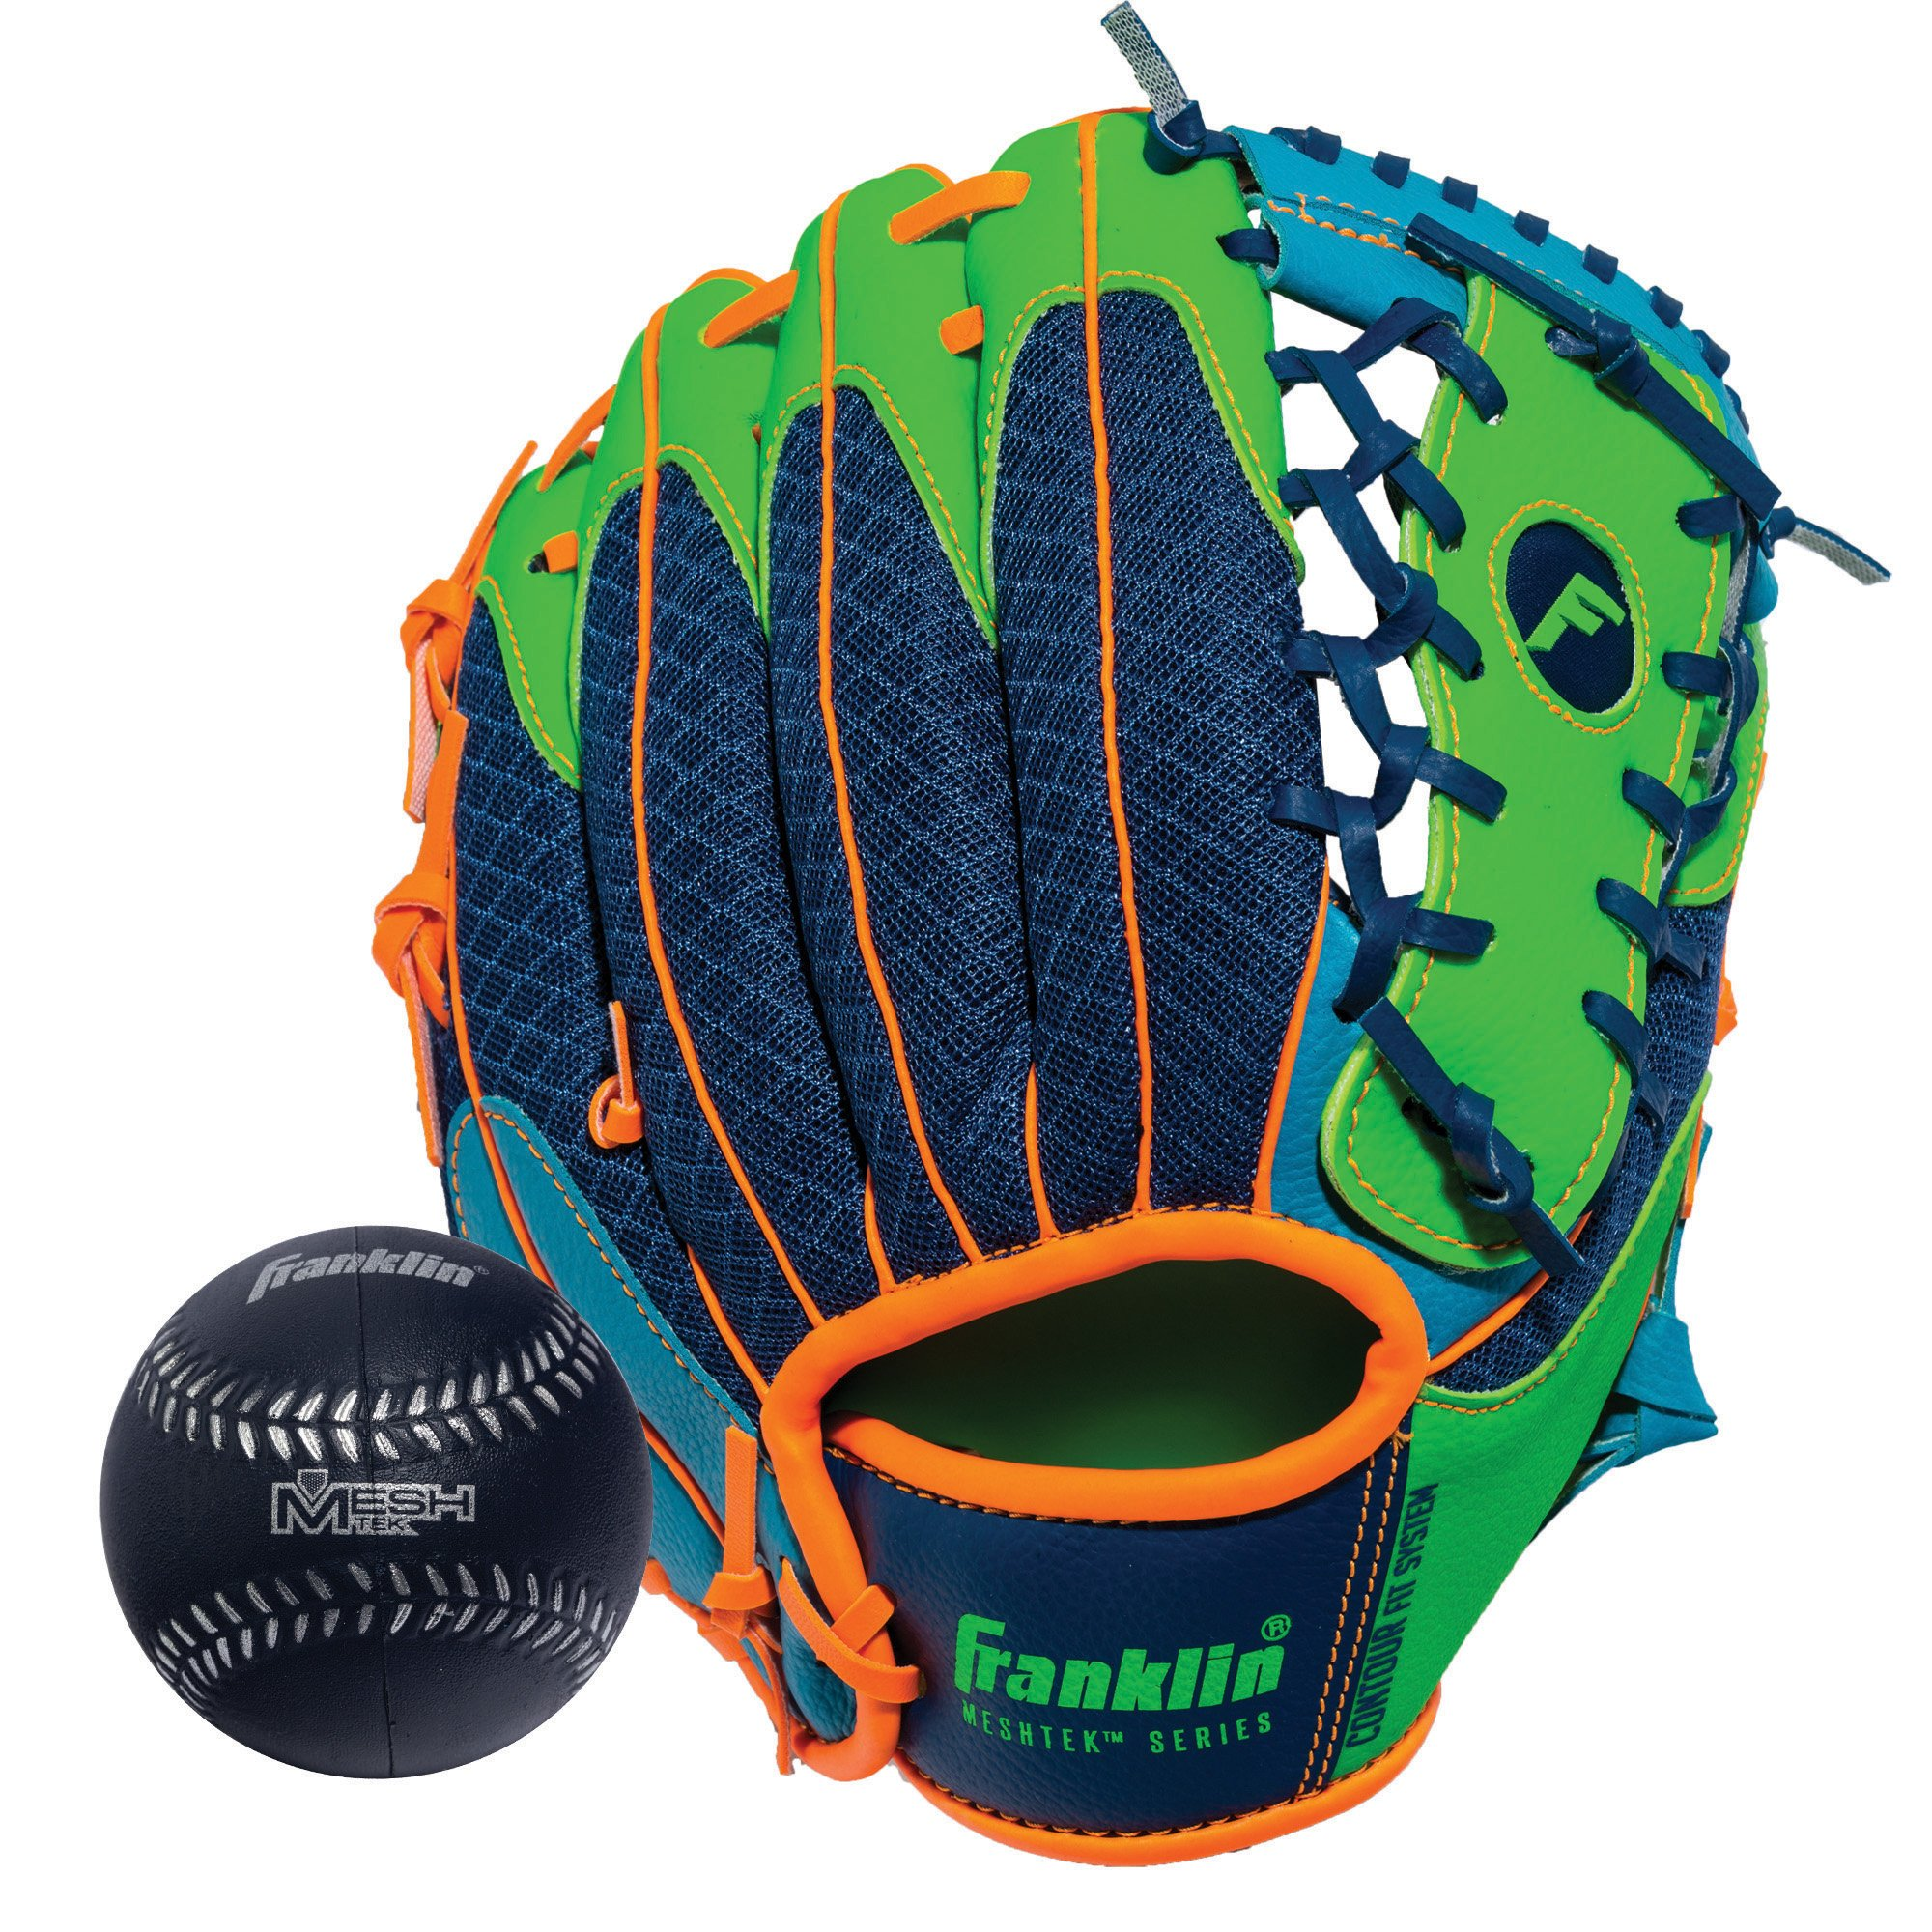 Franklin Sports Meshtek Series Teeball Glove – 9.5″ – Perfect for First Time Players